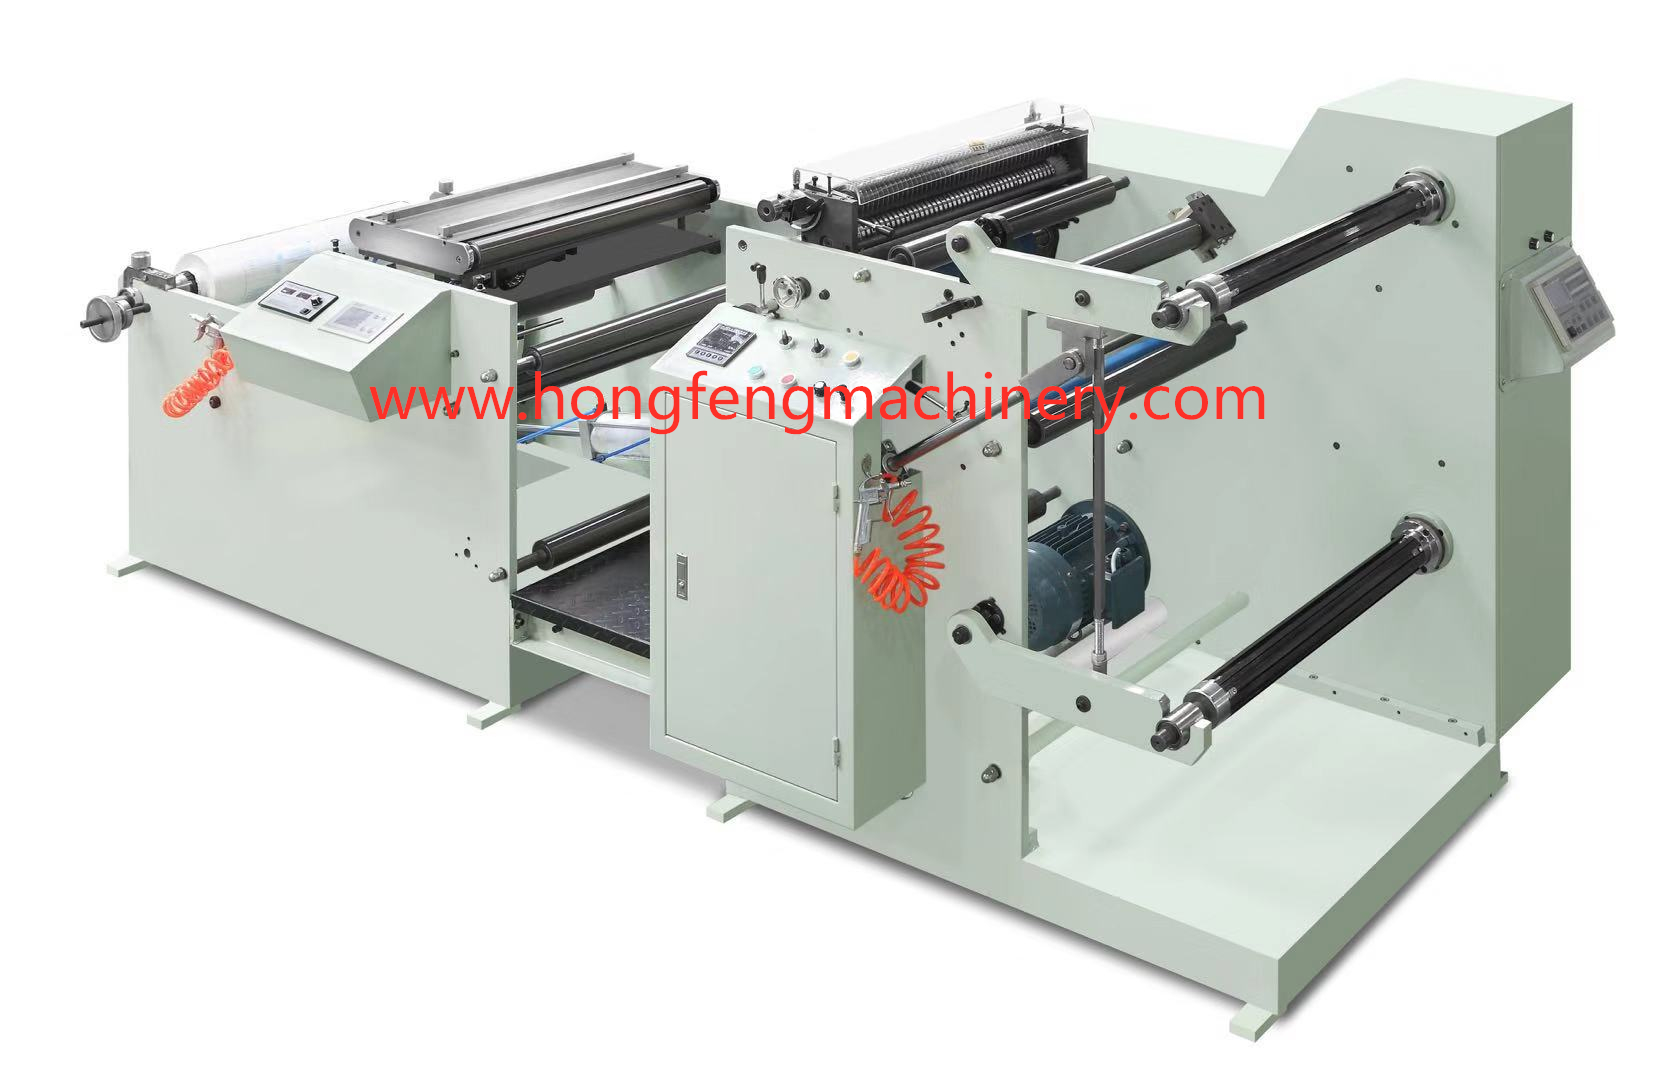 HF-S650 Paper Roll Slitting & Rewinding Machine